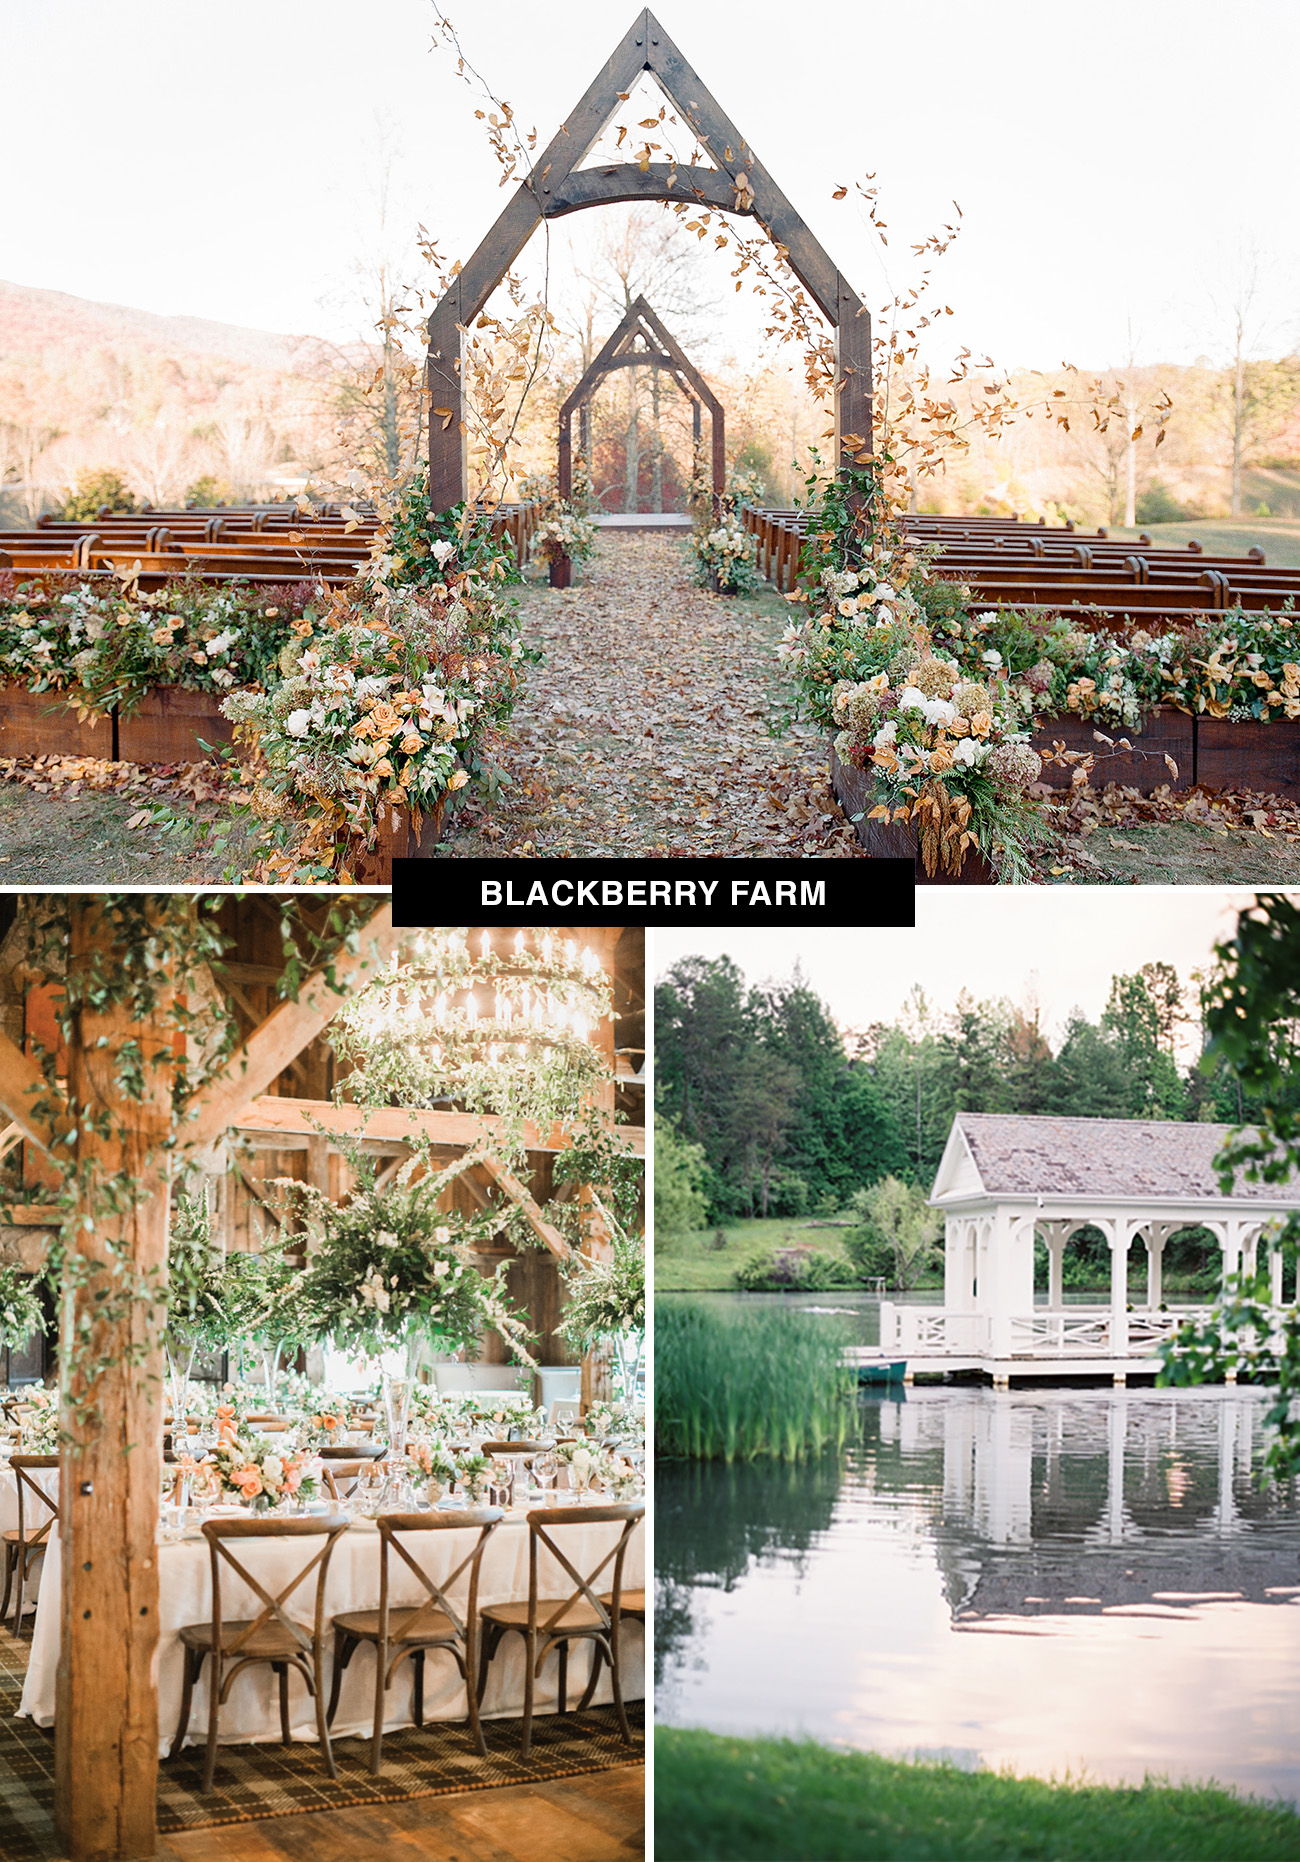 Blackberry Farm wedding venue in Tennessee would be a great place to get married in fall